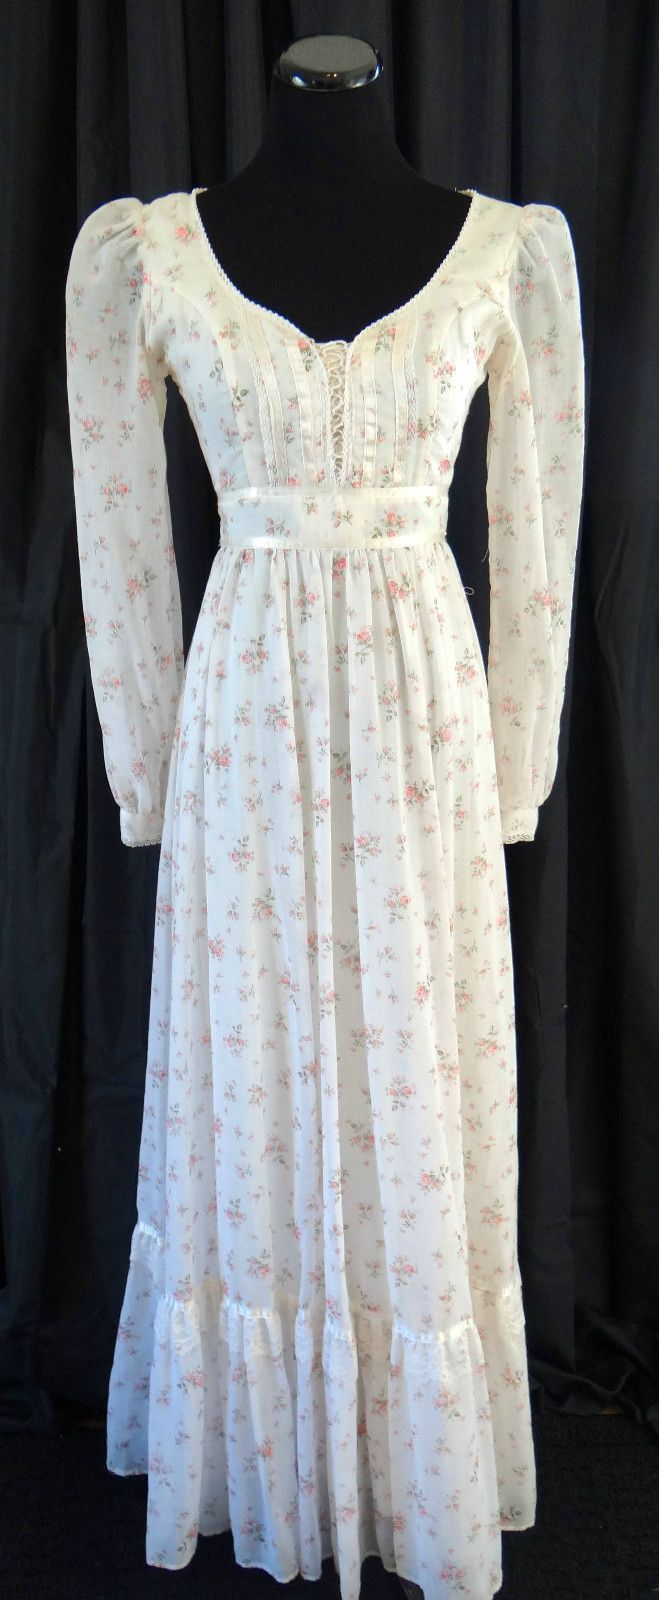 Very close to what my grandmother made for me for a dance in 1982. Gunne Sax prairie dress 70's